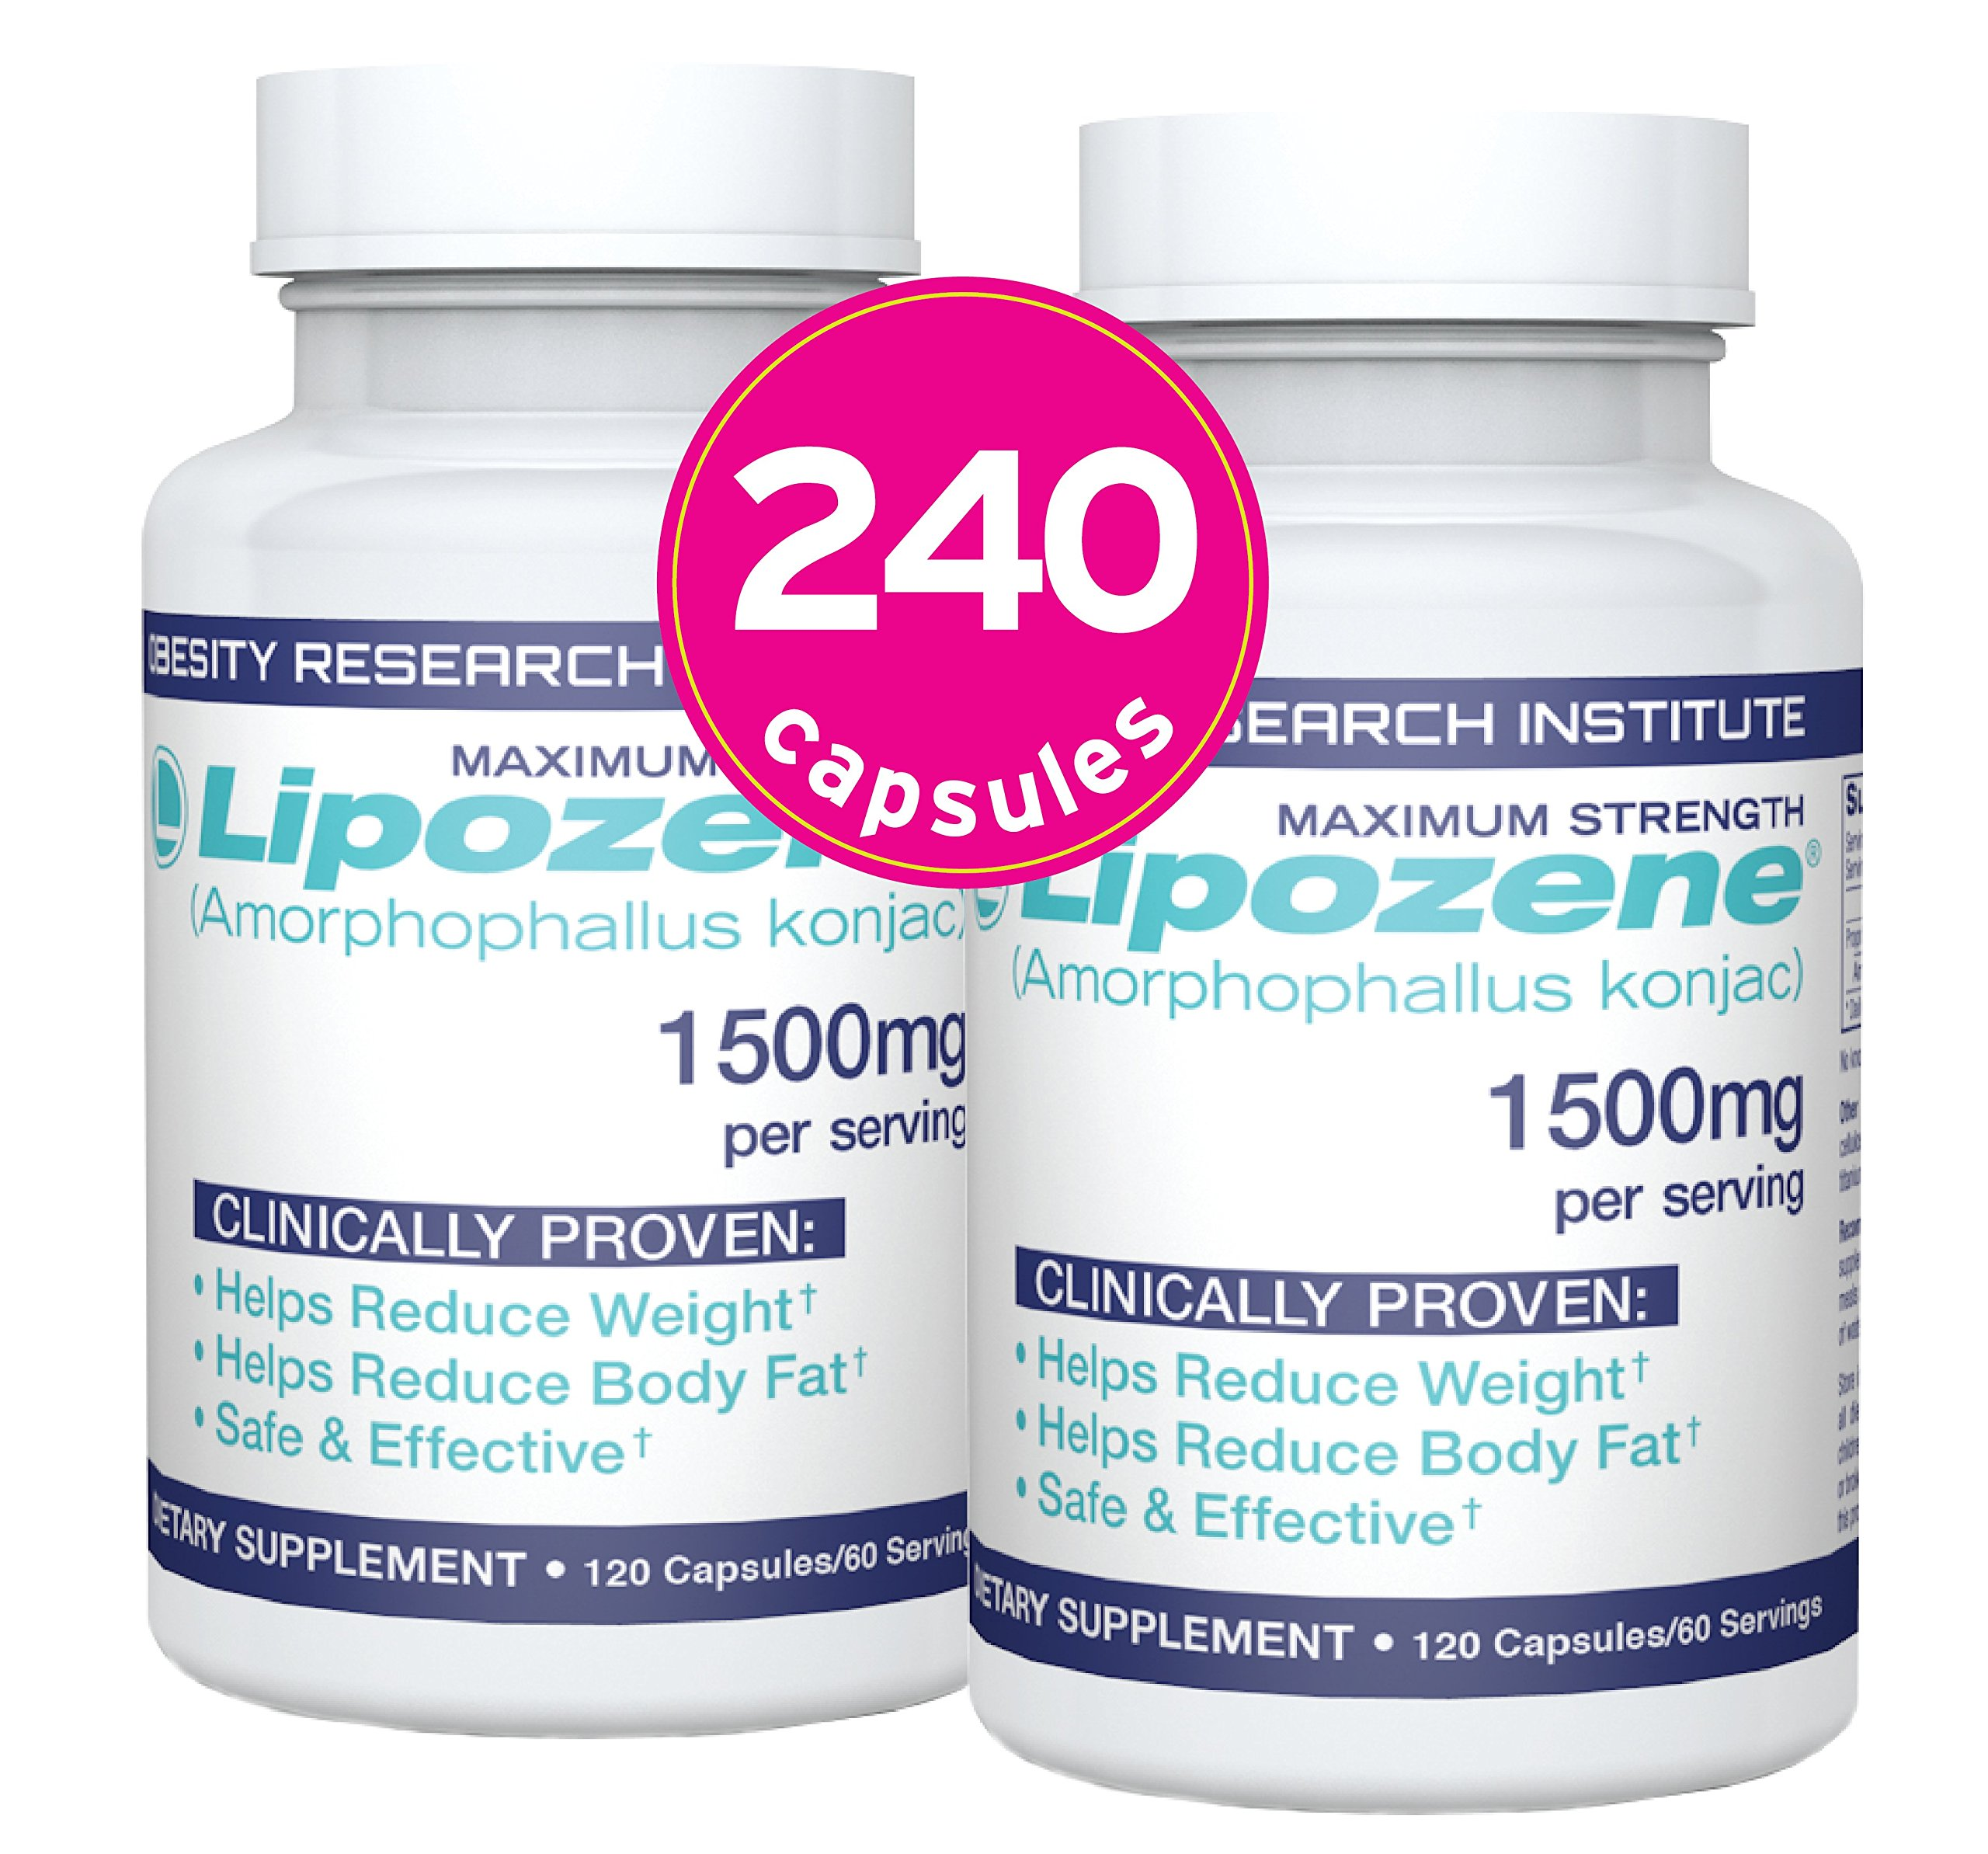 Lipozene Diet Pills - 2 Mega Bottles, 240 Capsules Total - Weight Loss Supplement - Appetite Suppressant and Control - No Stimulants No Jitters